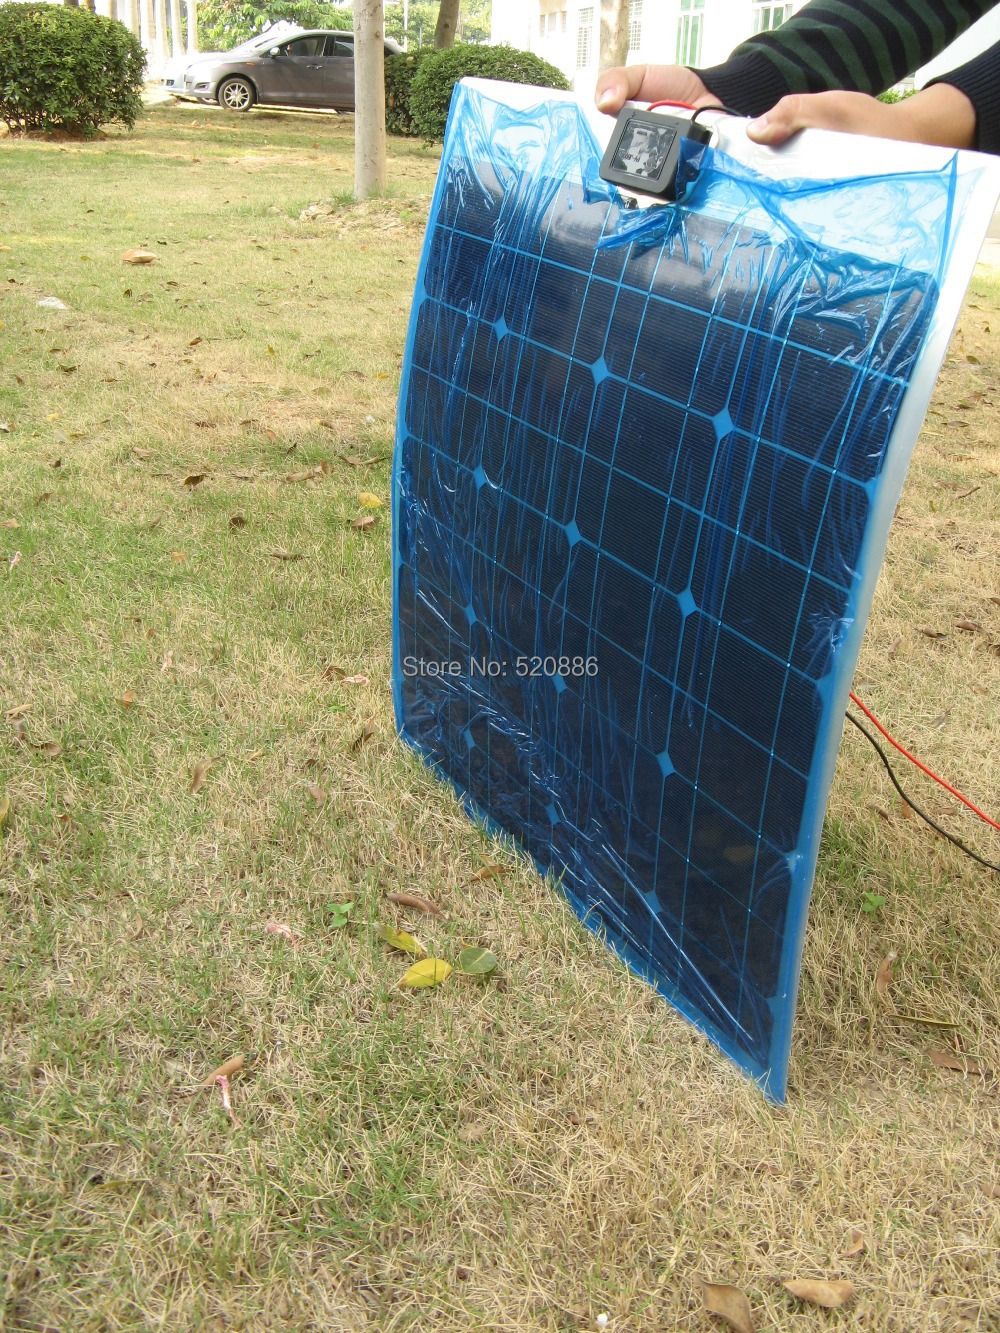 USA stock, no tax, 2pcs 40W mono semi-flexible pv solar panel 12v, for boat RV,  home solar system, car battery, free shipping sp 36 120w 12v semi flexible monocrystalline solar panel waterproof high conversion efficiency for rv boat car 1 5m cable